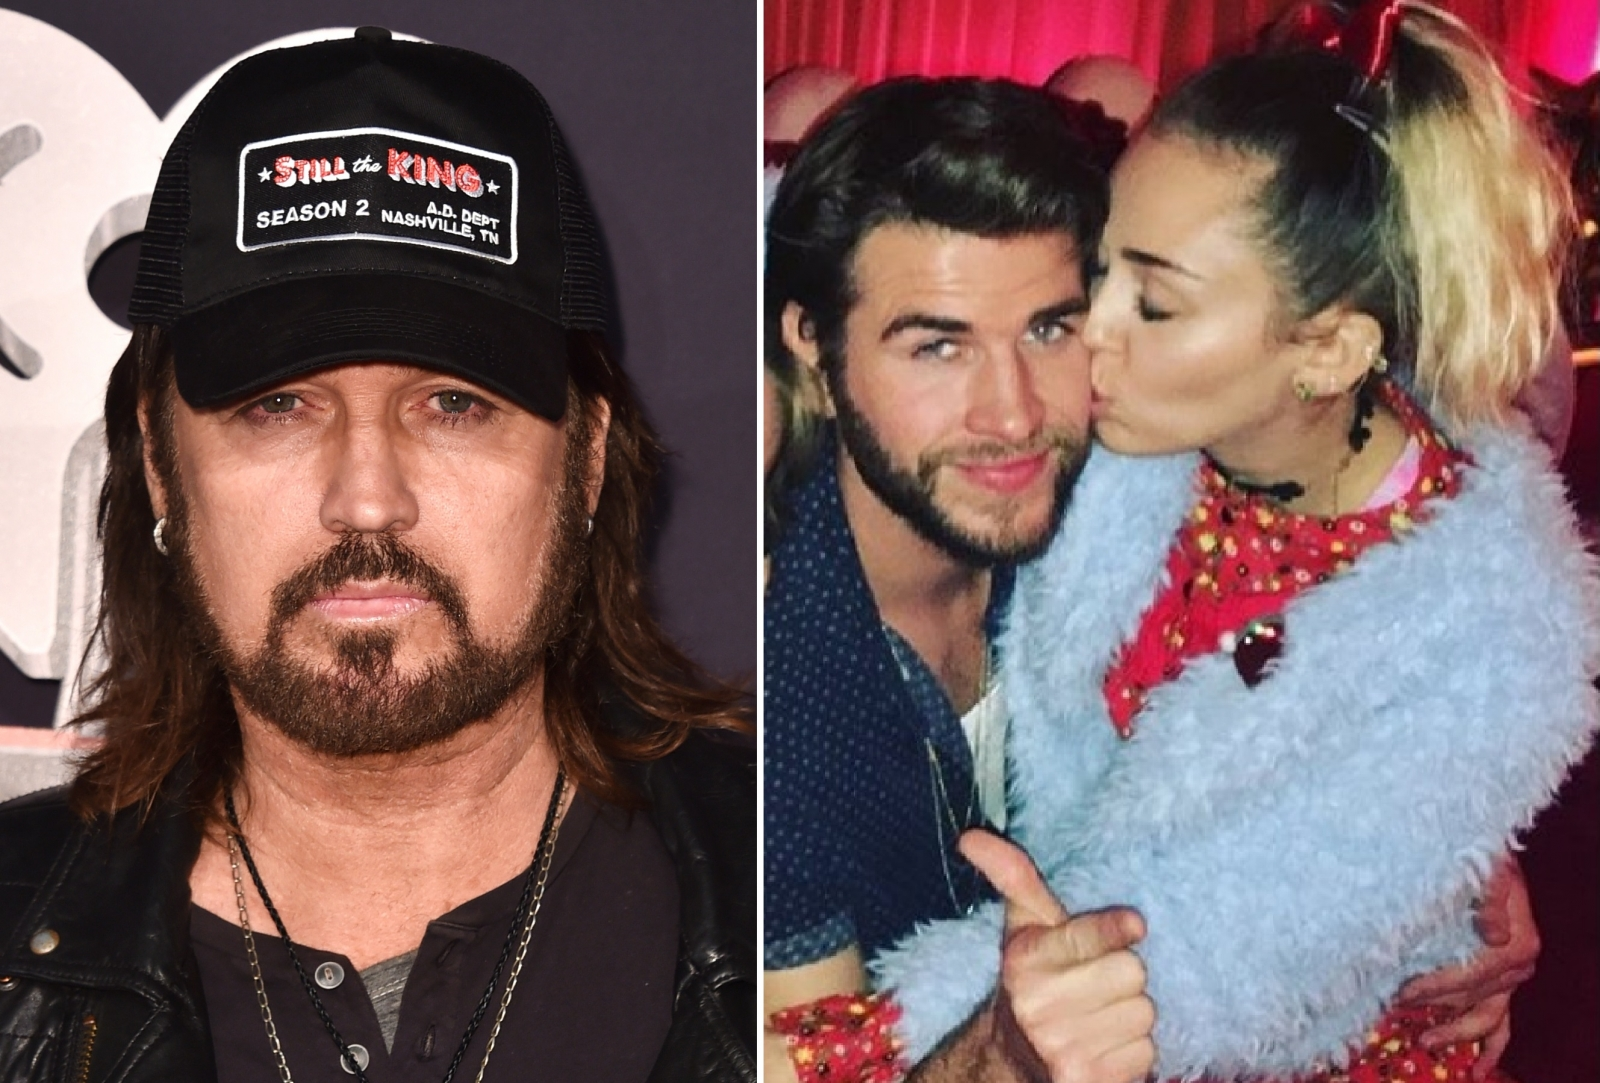 Miley Cyrus and Liam Hemsworth married: Billy Ray Cyrus responds to wedding rumours